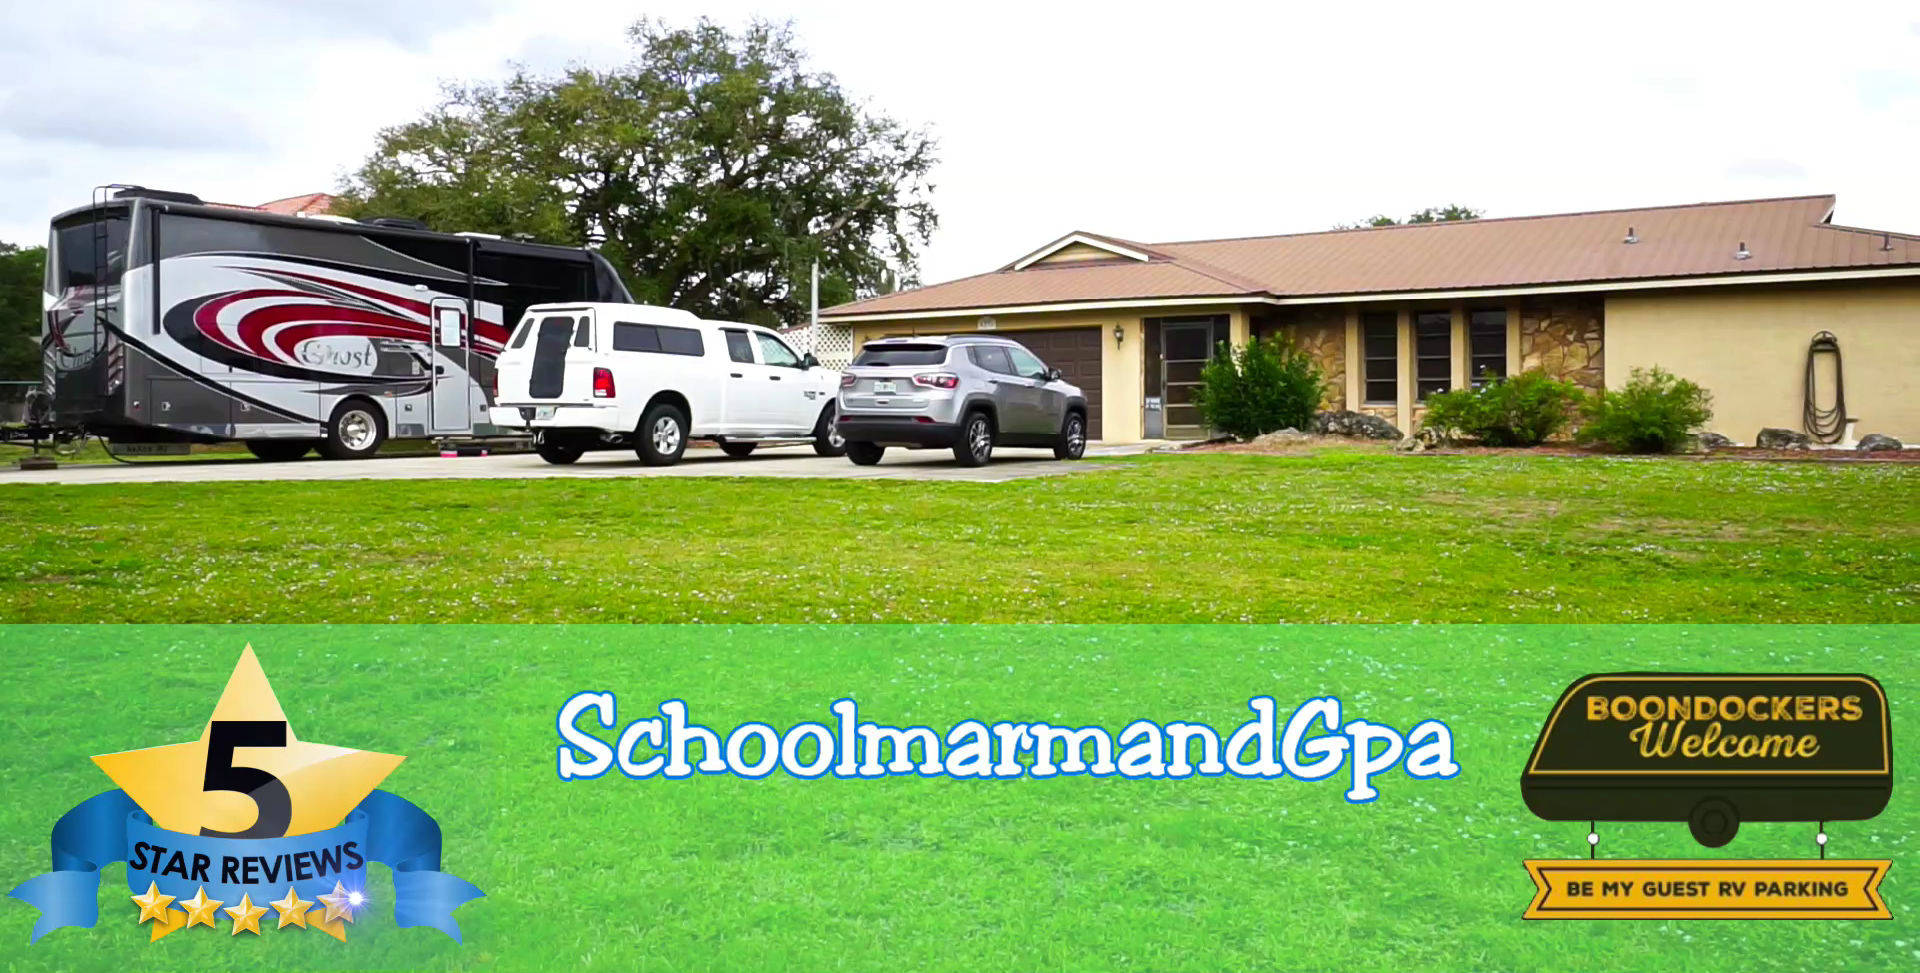 Boondockers Welcome free rv camping SchoolmarmandGpa